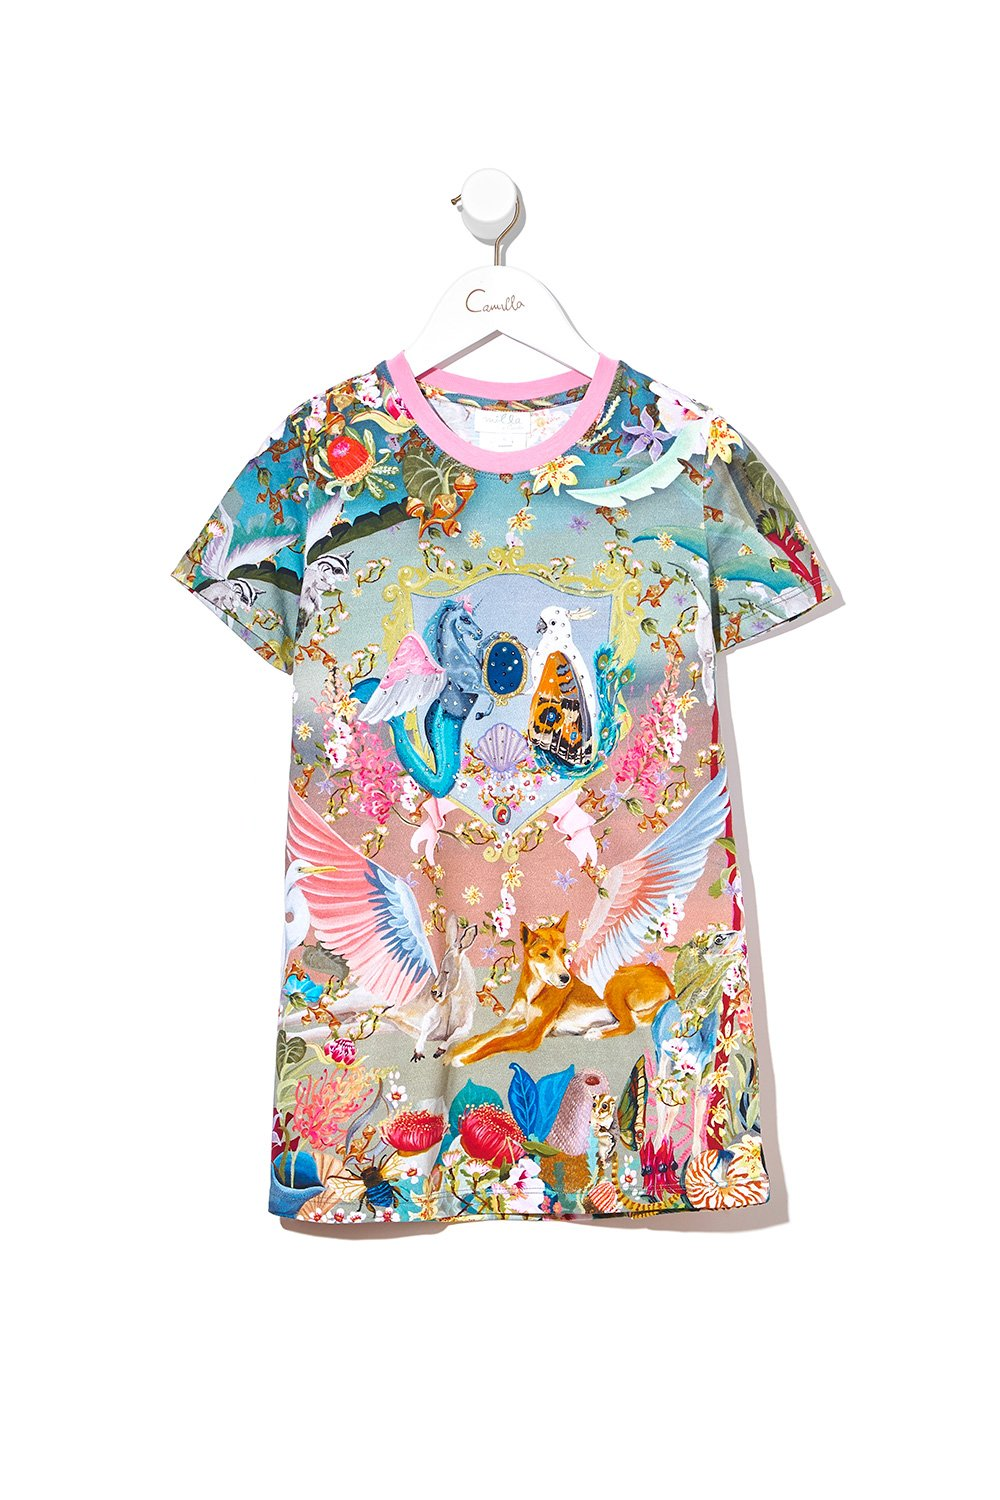 Let's Take A Trip Kids Tshirt Dress